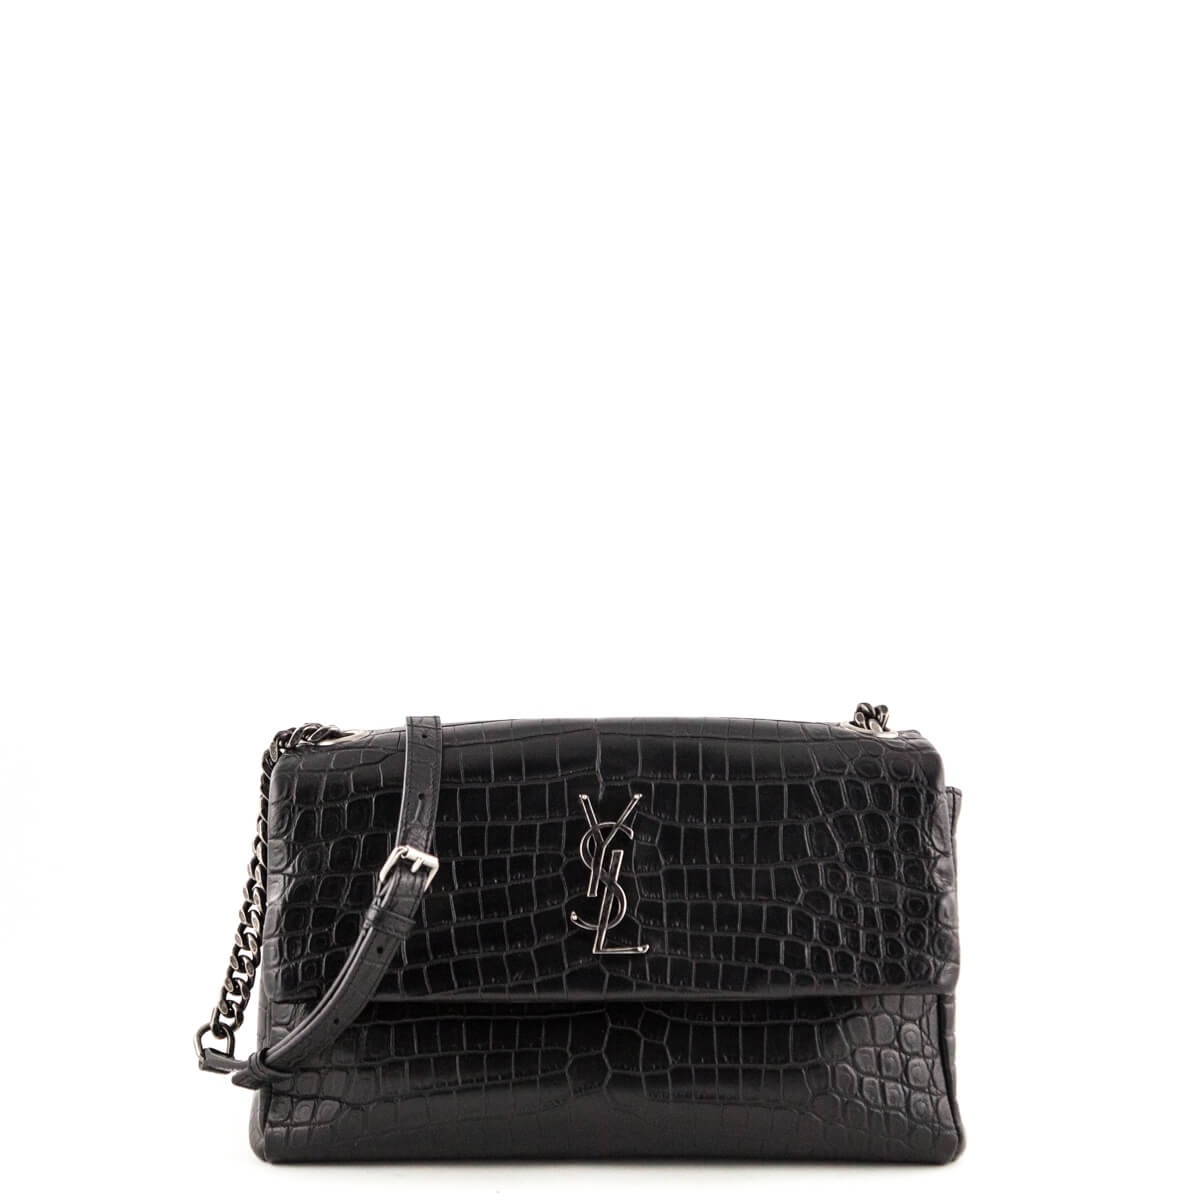 598b308380b8 Saint_Laurent_Black_Mat_Croc_Embossed_Lambskin_Medium_West_Hollywood_Bag-1.jpg?v=1517913965